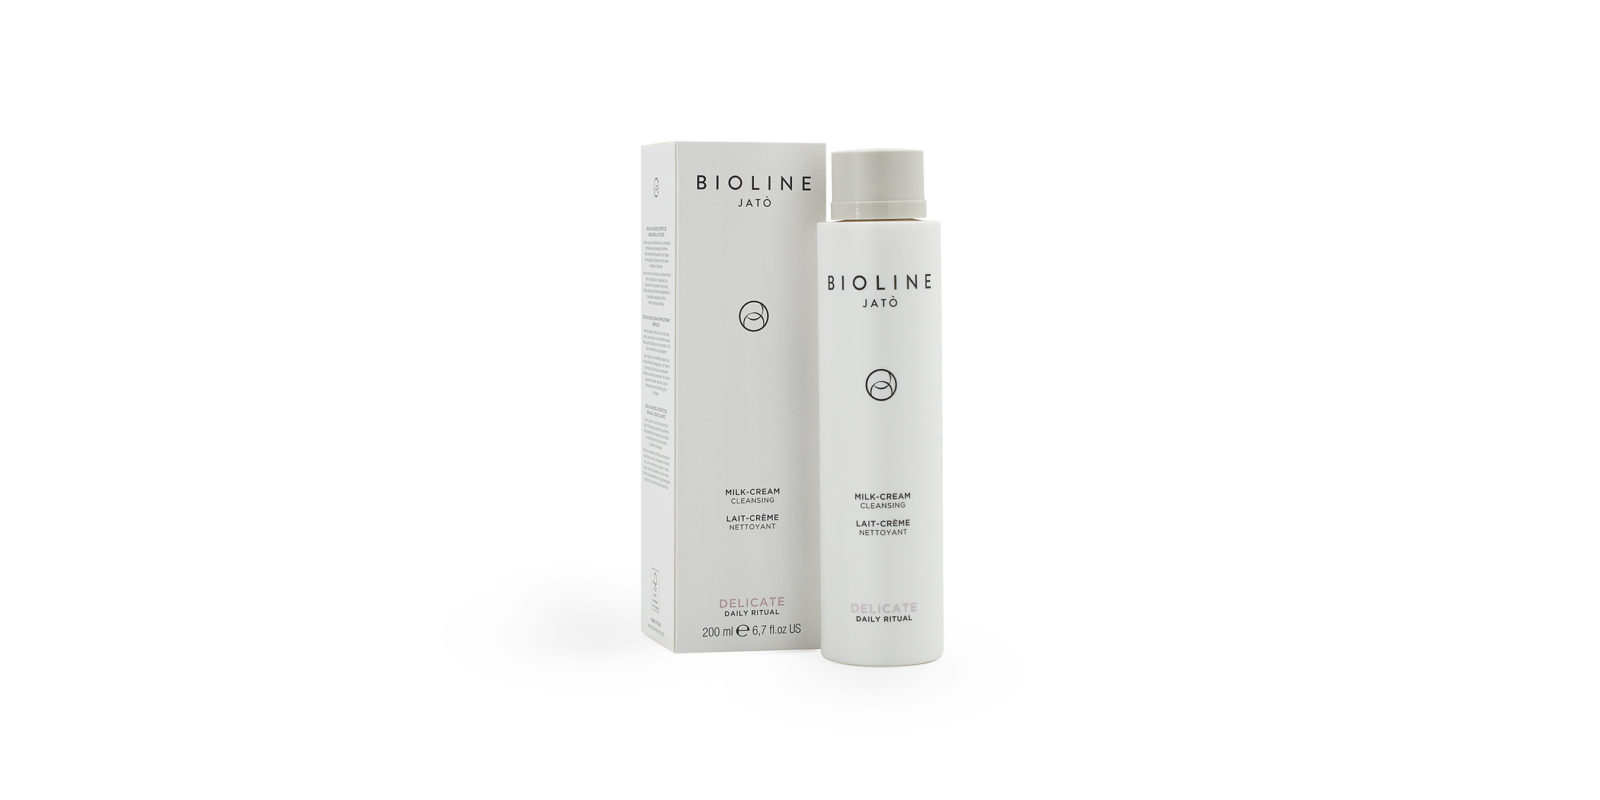 Bioline Jatò Delicate Daily Ritual Milk-Cream Cleansing